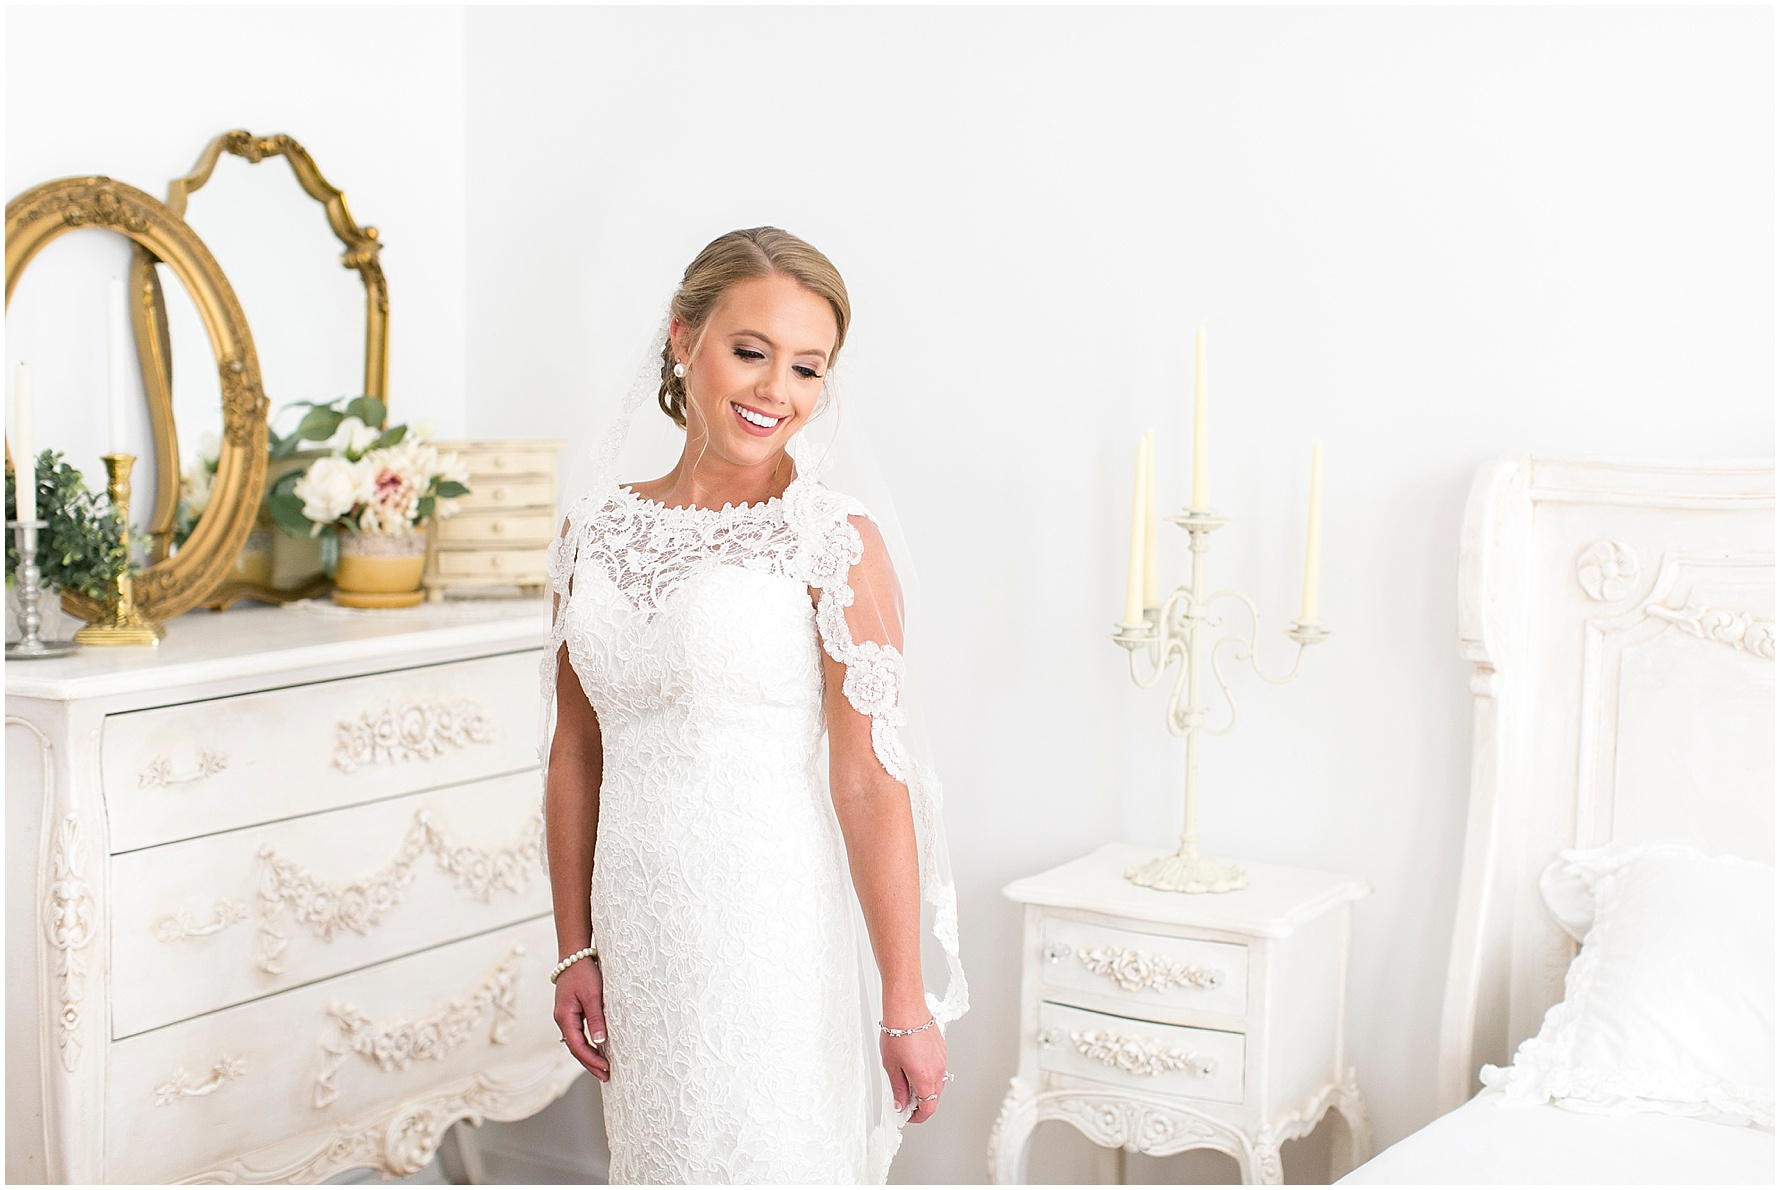 studio at wharf hill bridal portrait, Jessica Ryan photography, classic bride